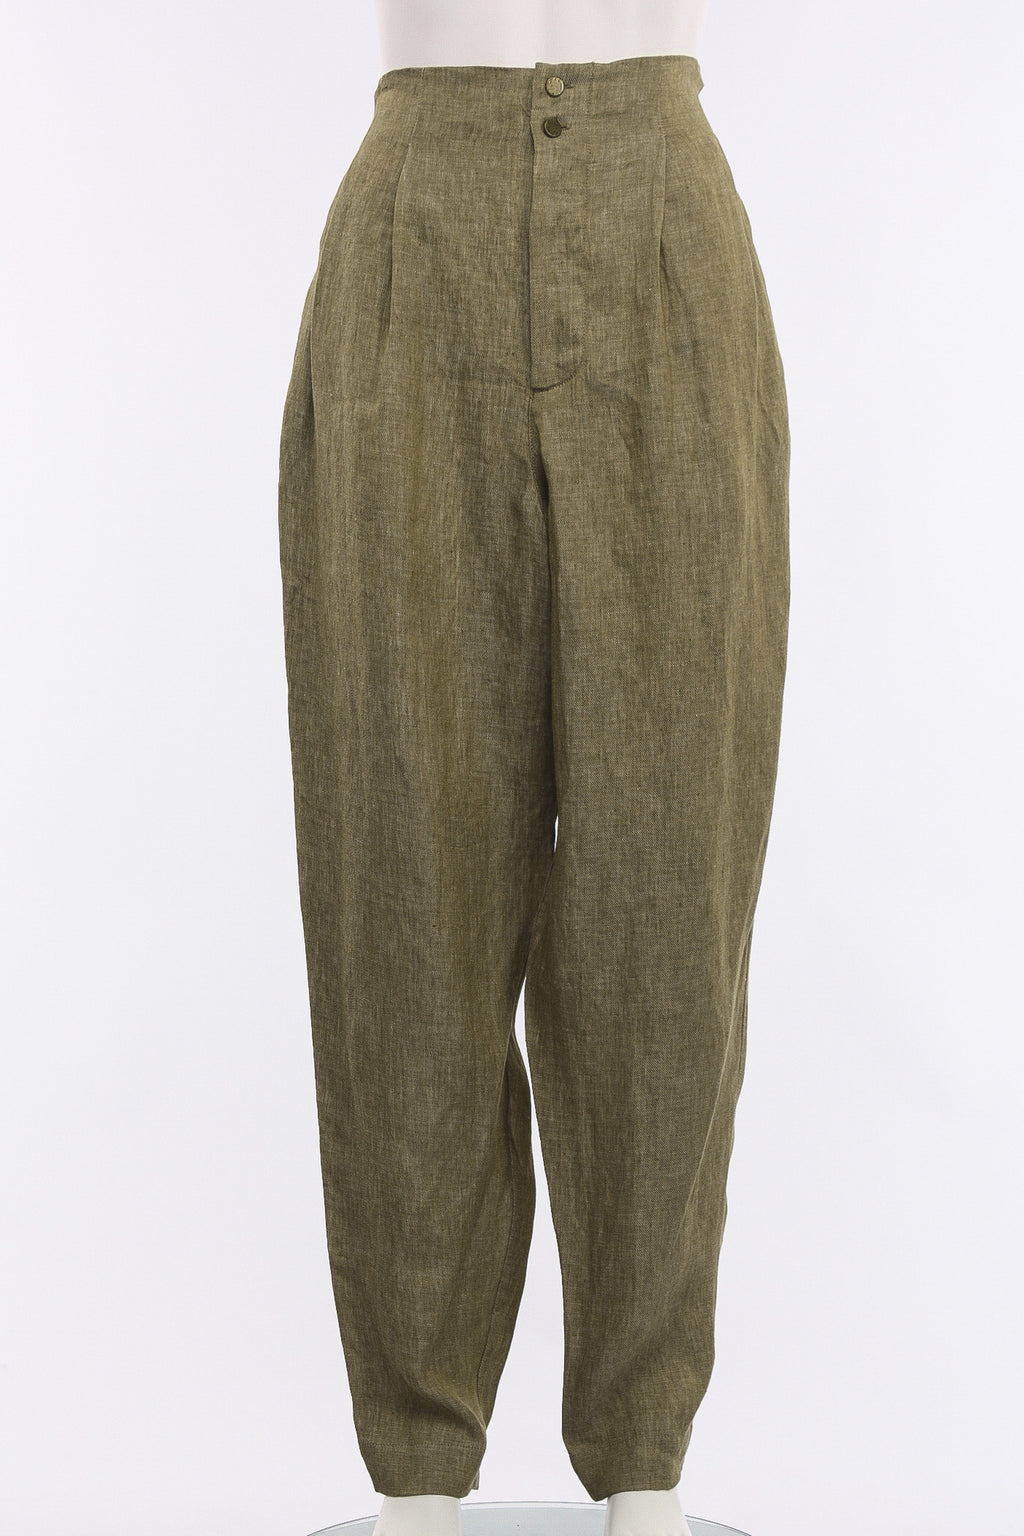 Tapered Pant in Olive